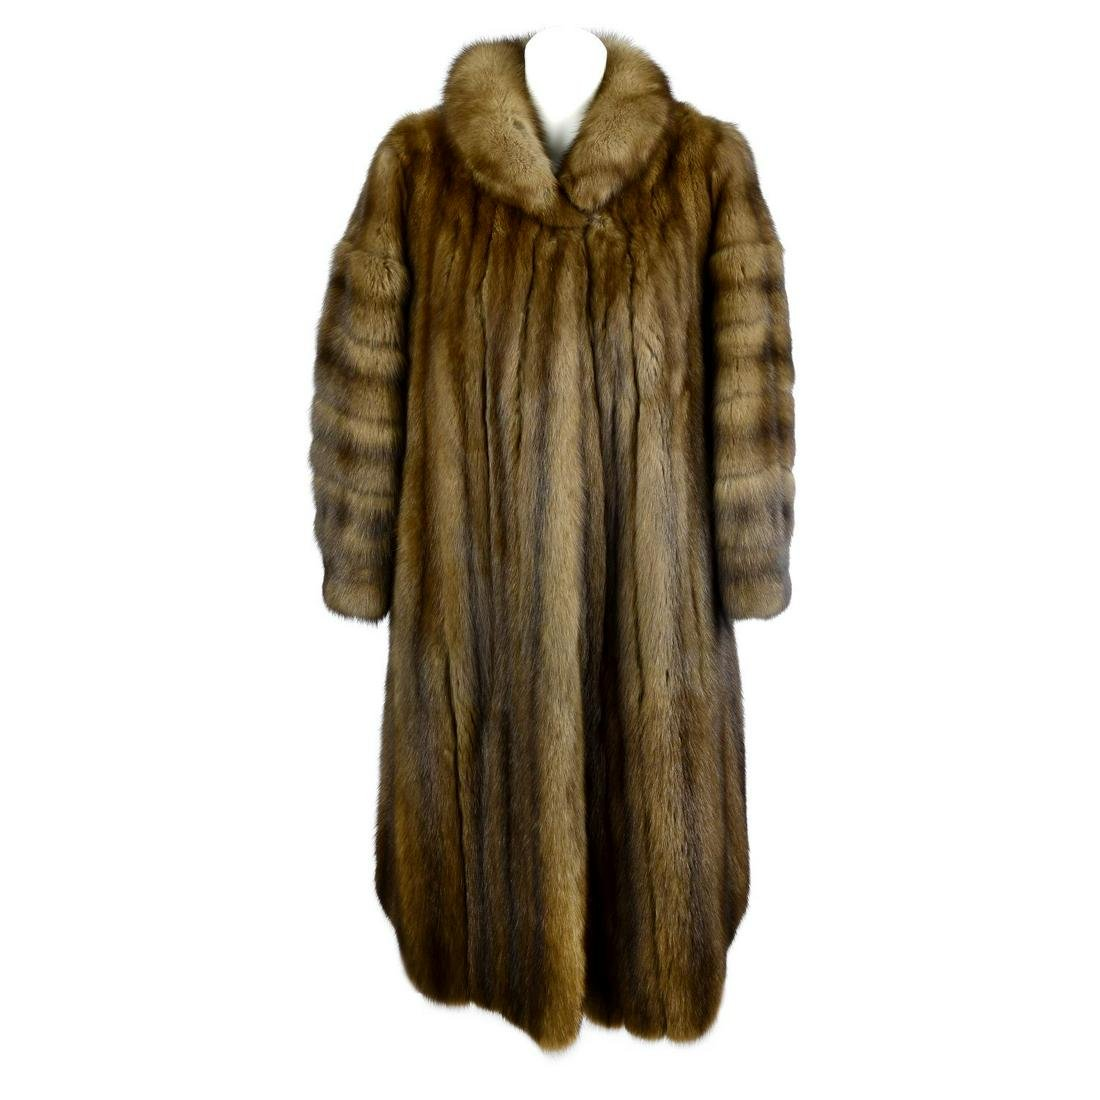 A full length sable fur coat. Designed with a short